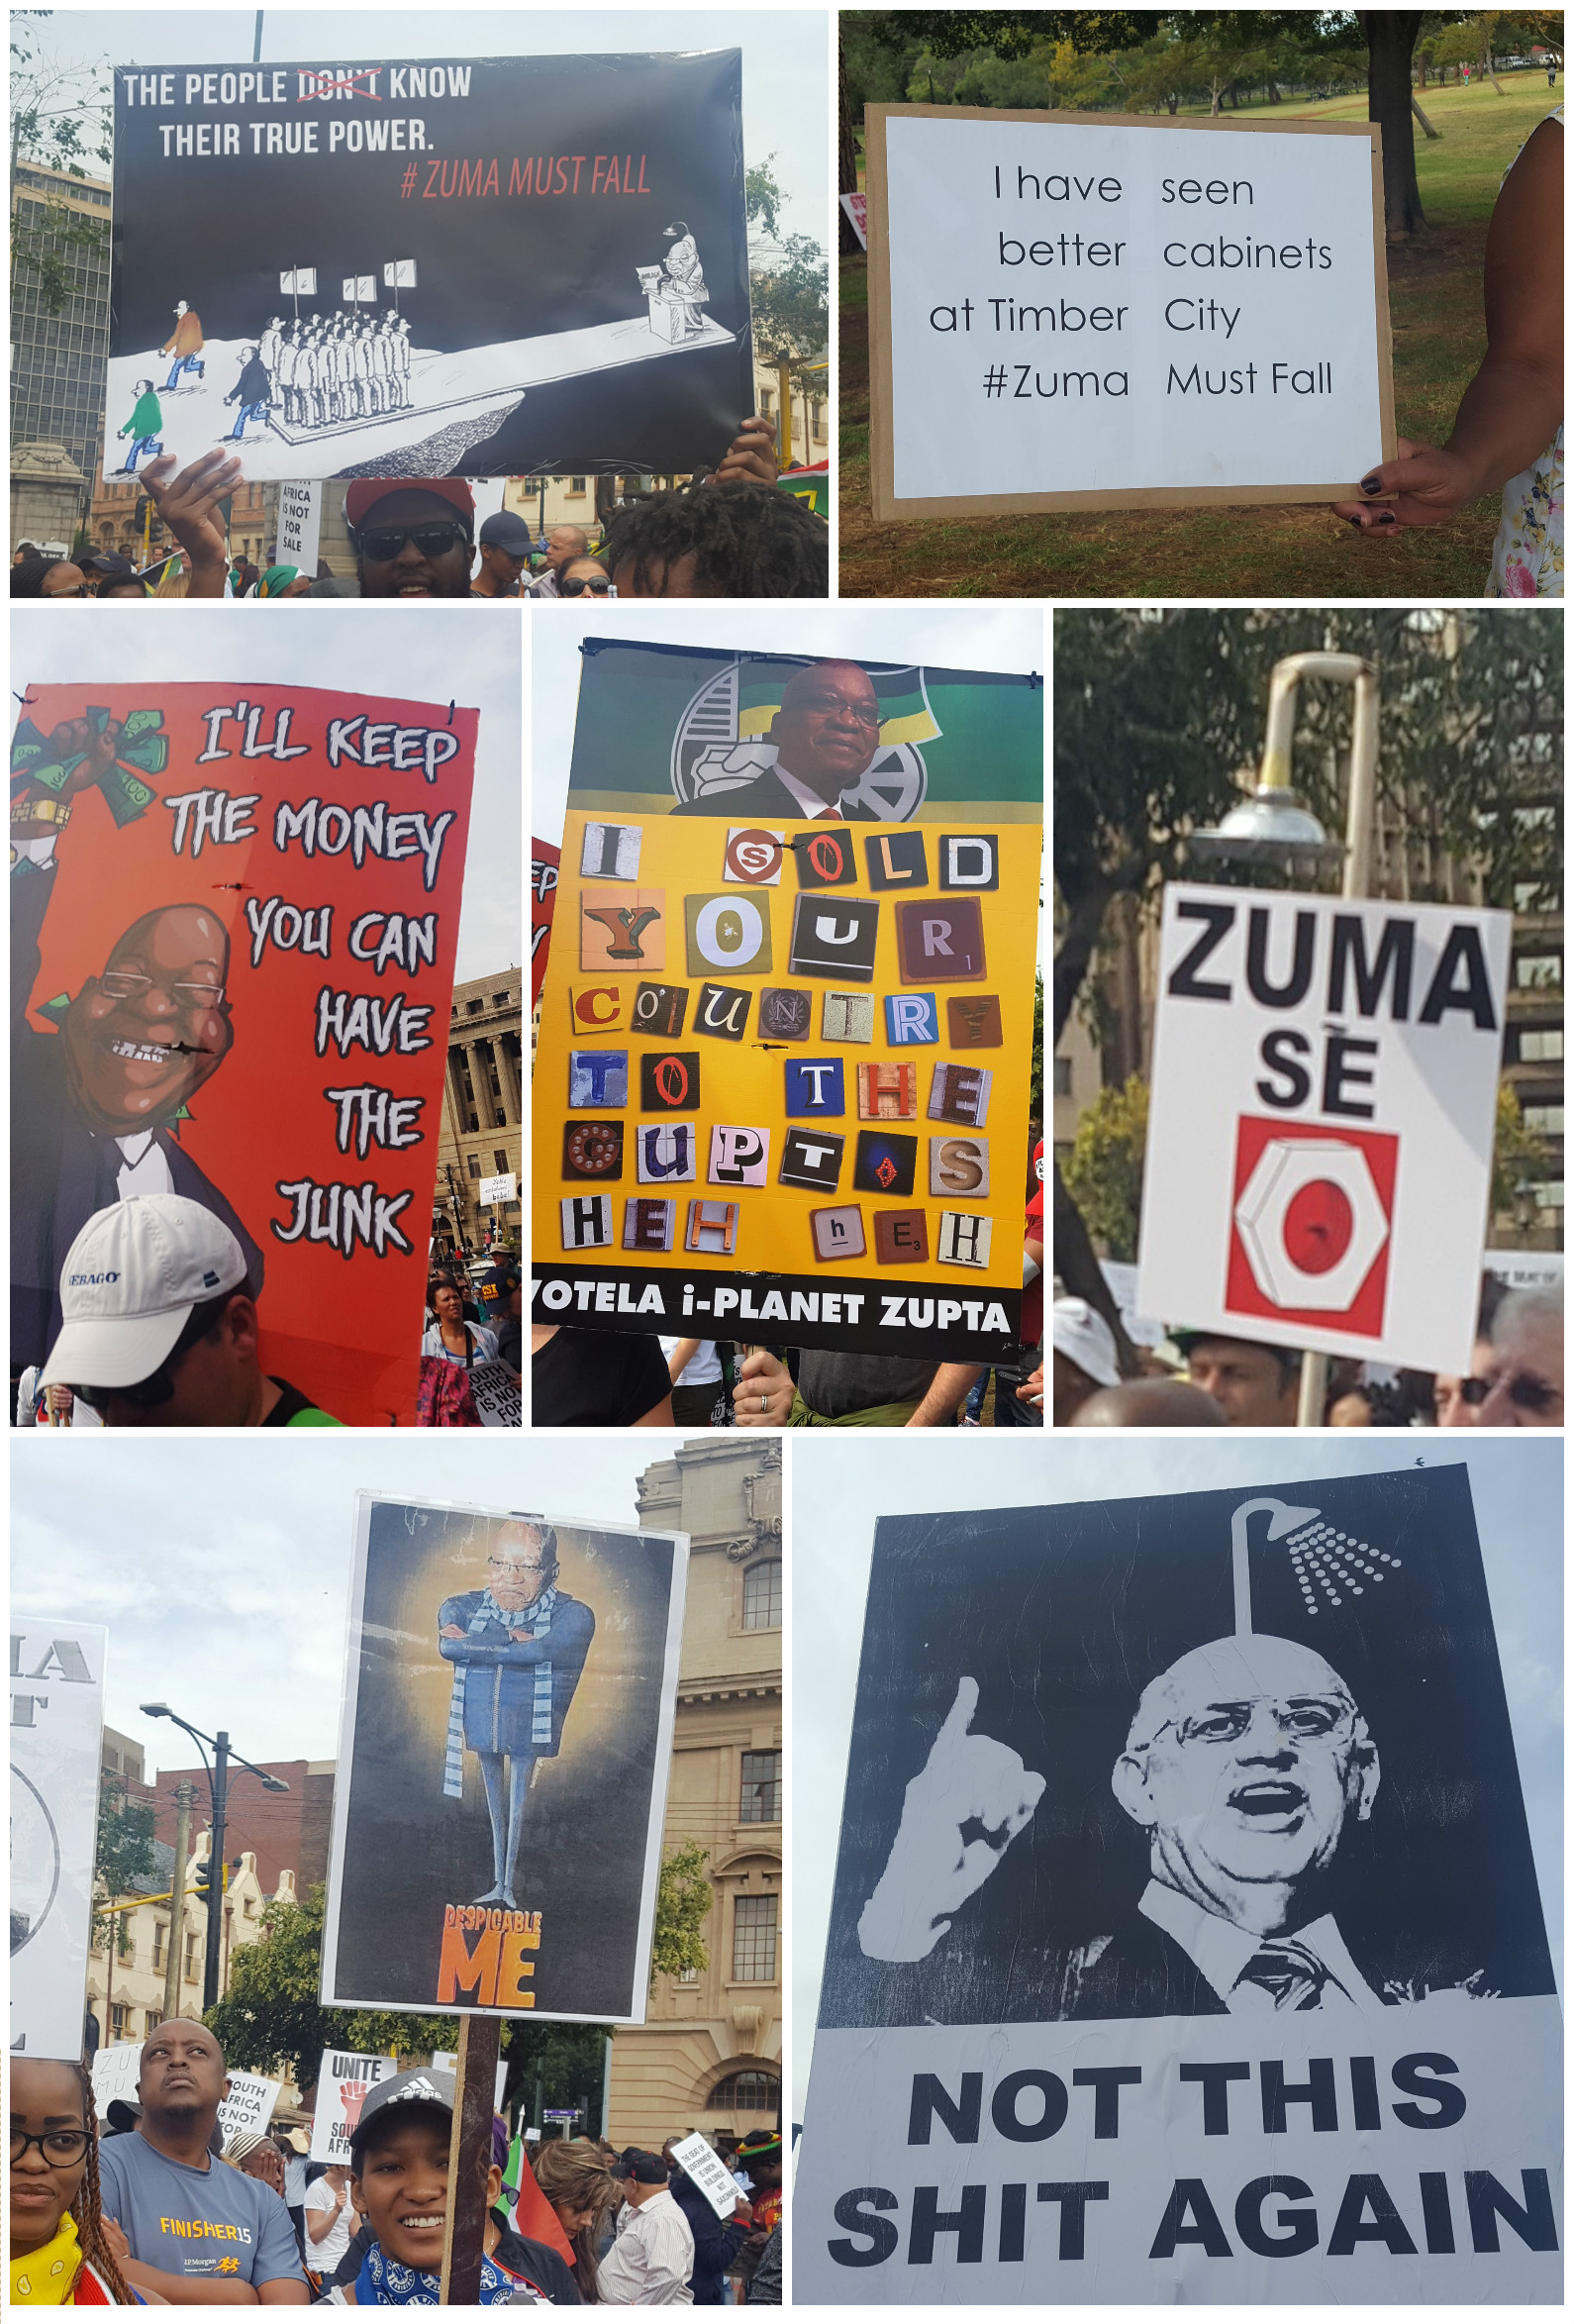 A collage of posters from the AntiZumaMarch which had humous elements